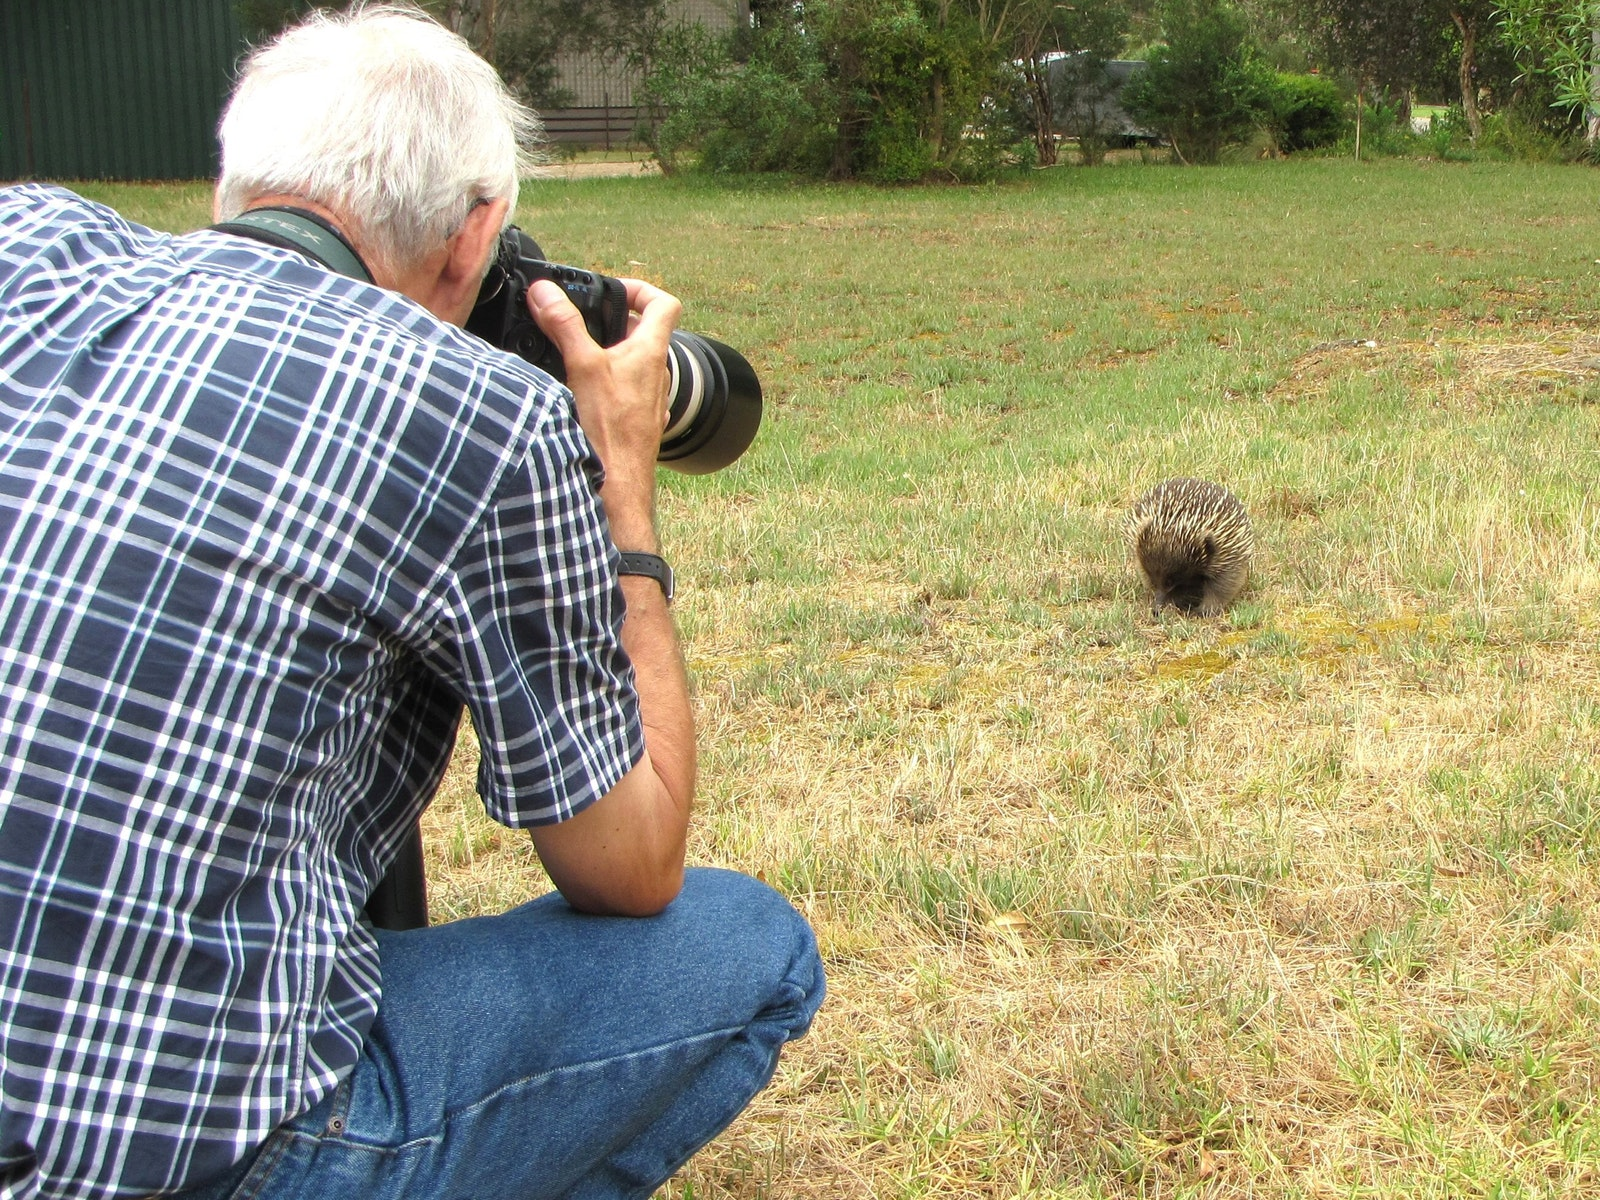 photographing a wild Echidna